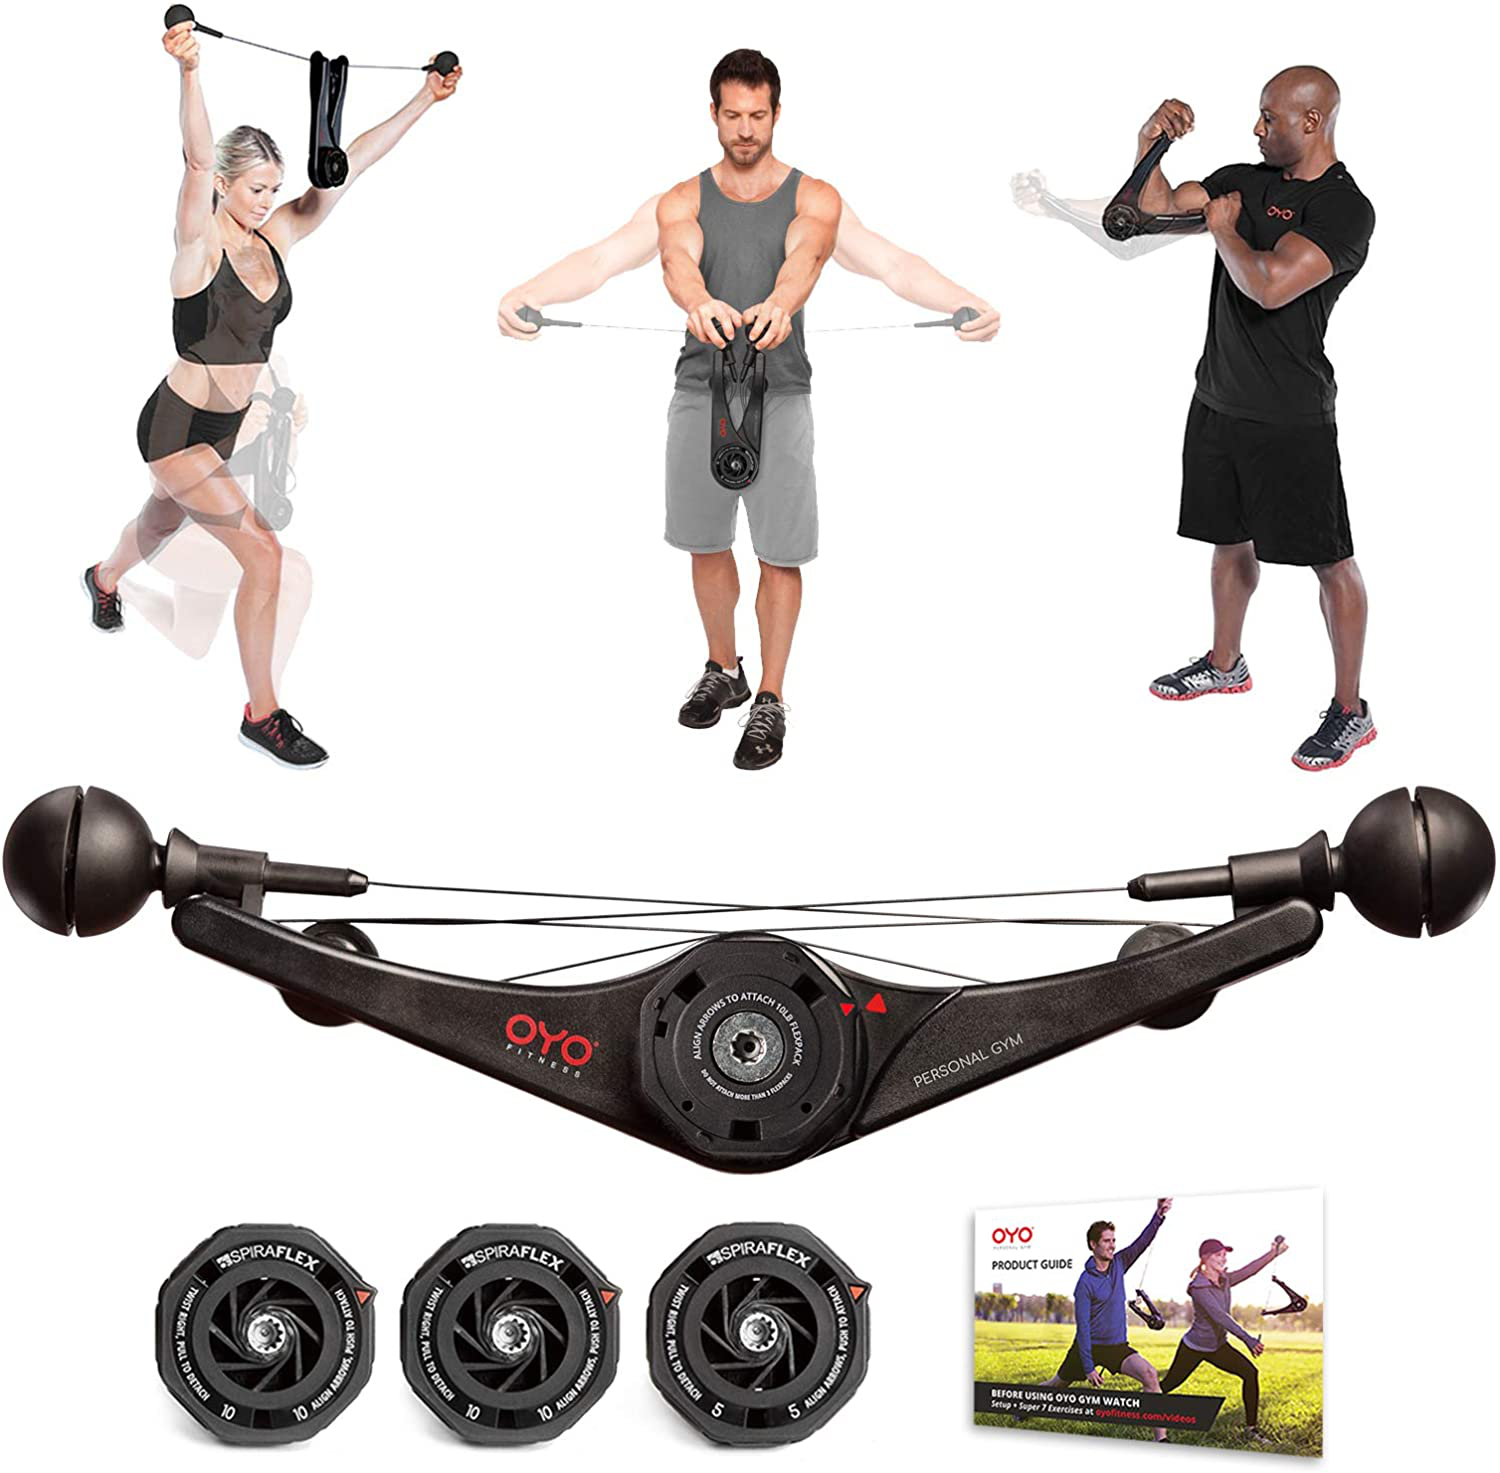 Full Body Portable Gym Equipment Set For Exercise At Home